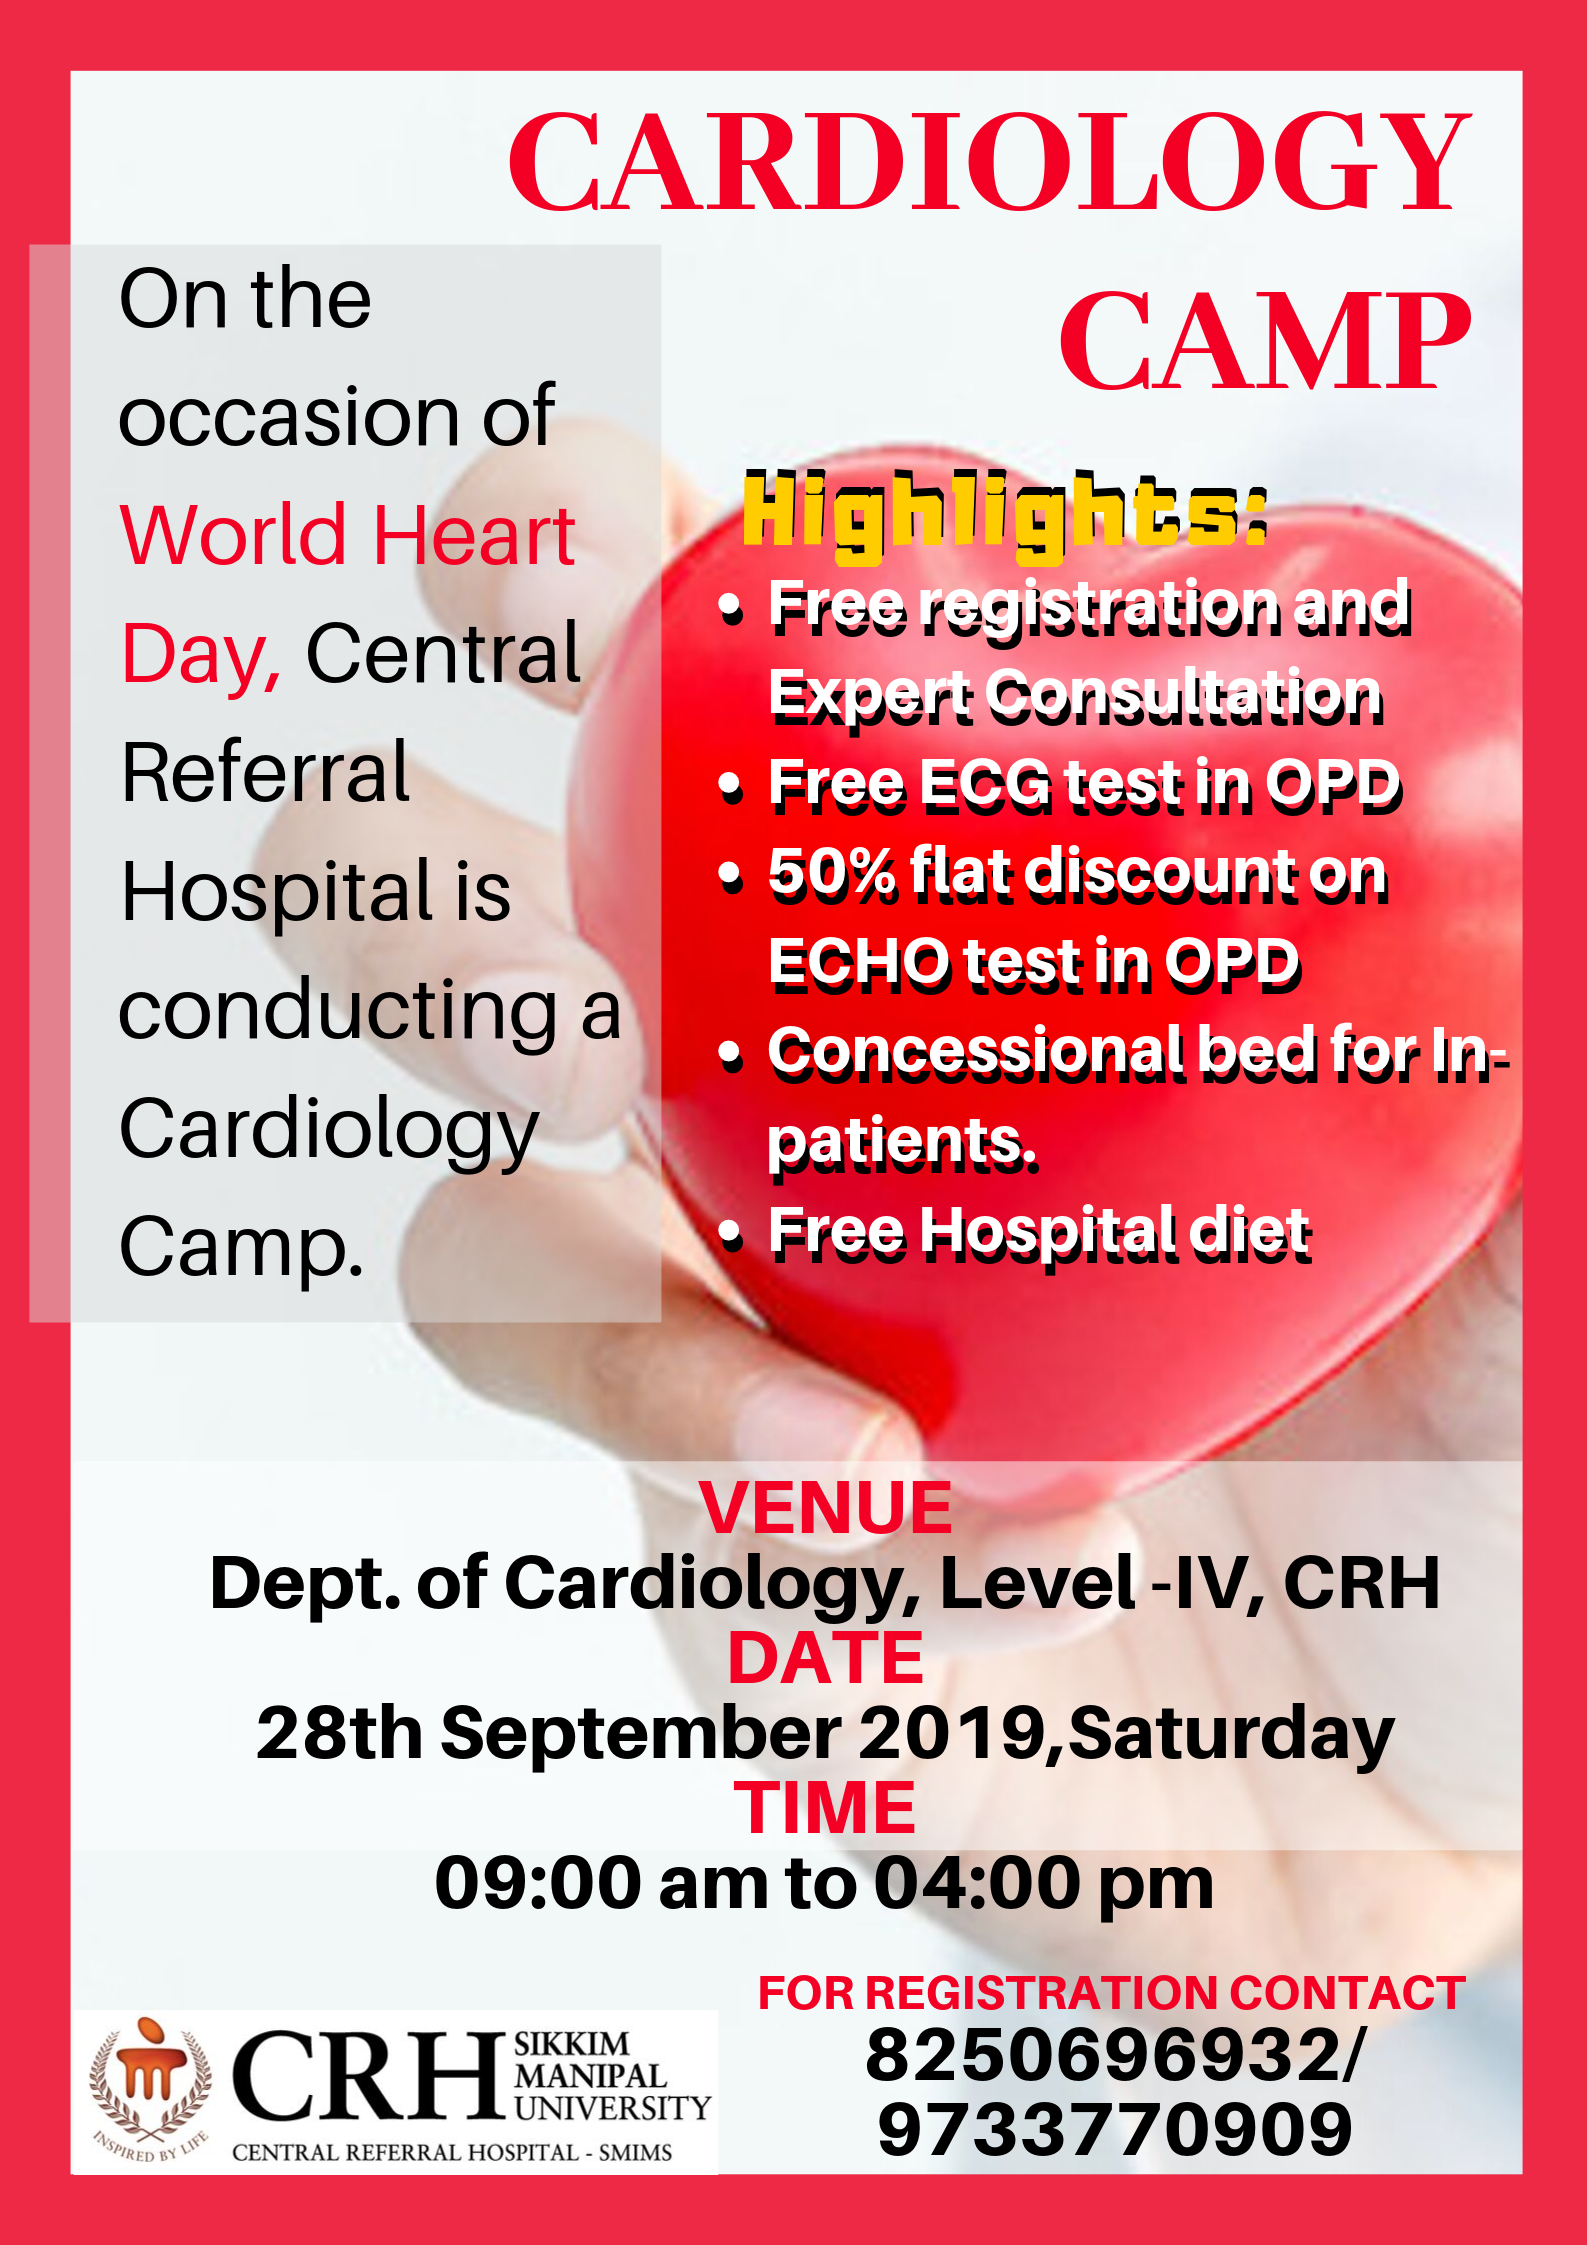 Central Referral Hospital is organizing a Cardiology Camp on 28th September 2019